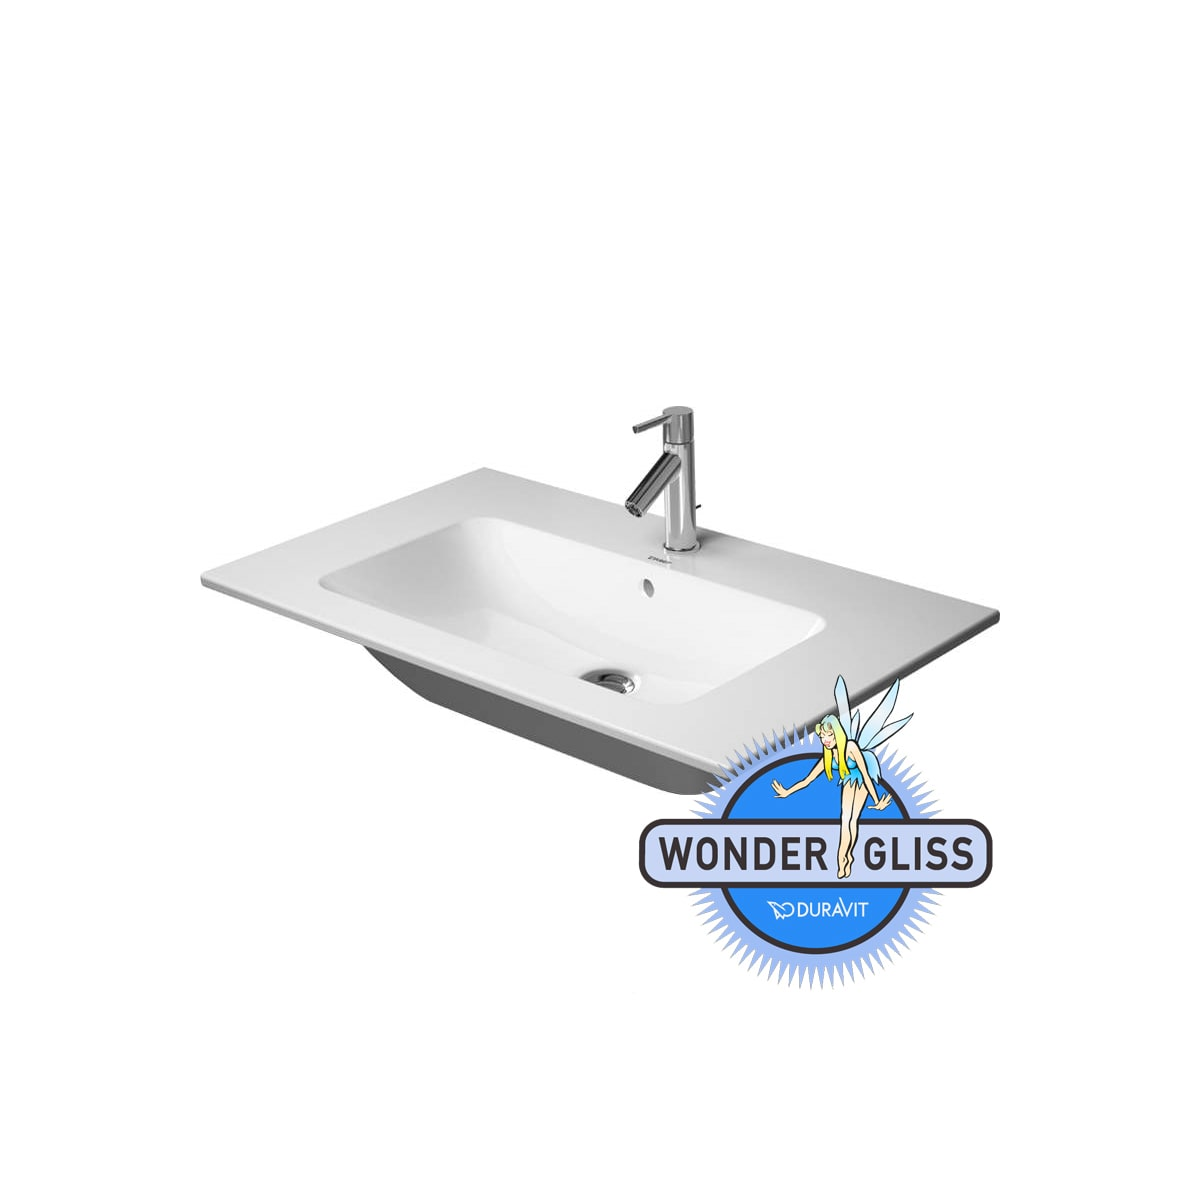 Duravit 23274800001 Starck 2 Ceramic 18 7 8 Drop In Bathroom Sink With Single Faucet Hole And Overflow 23274800001 Snyder Diamond